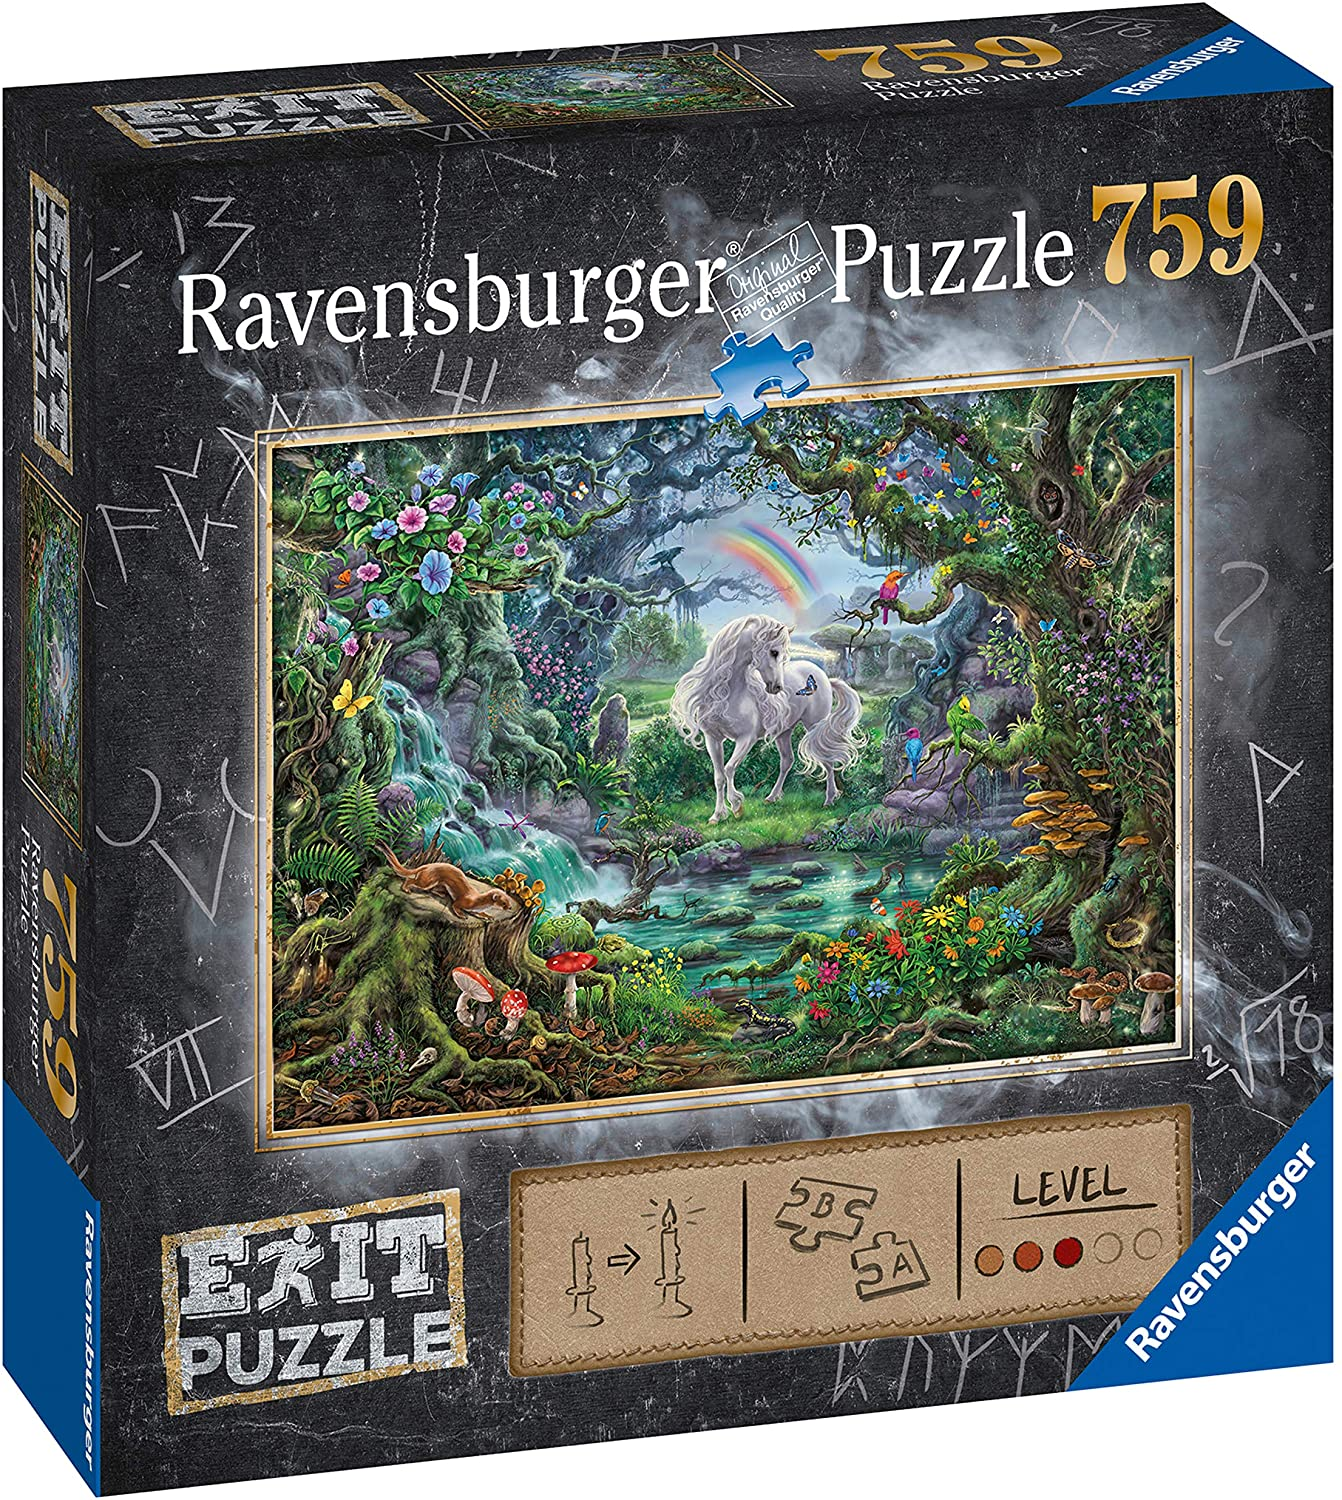 Ravensburger 15030 Escape The Room Unicorn 759 Piece Jigsaw Puzzle for Adults & for Kids Age 12 and Up